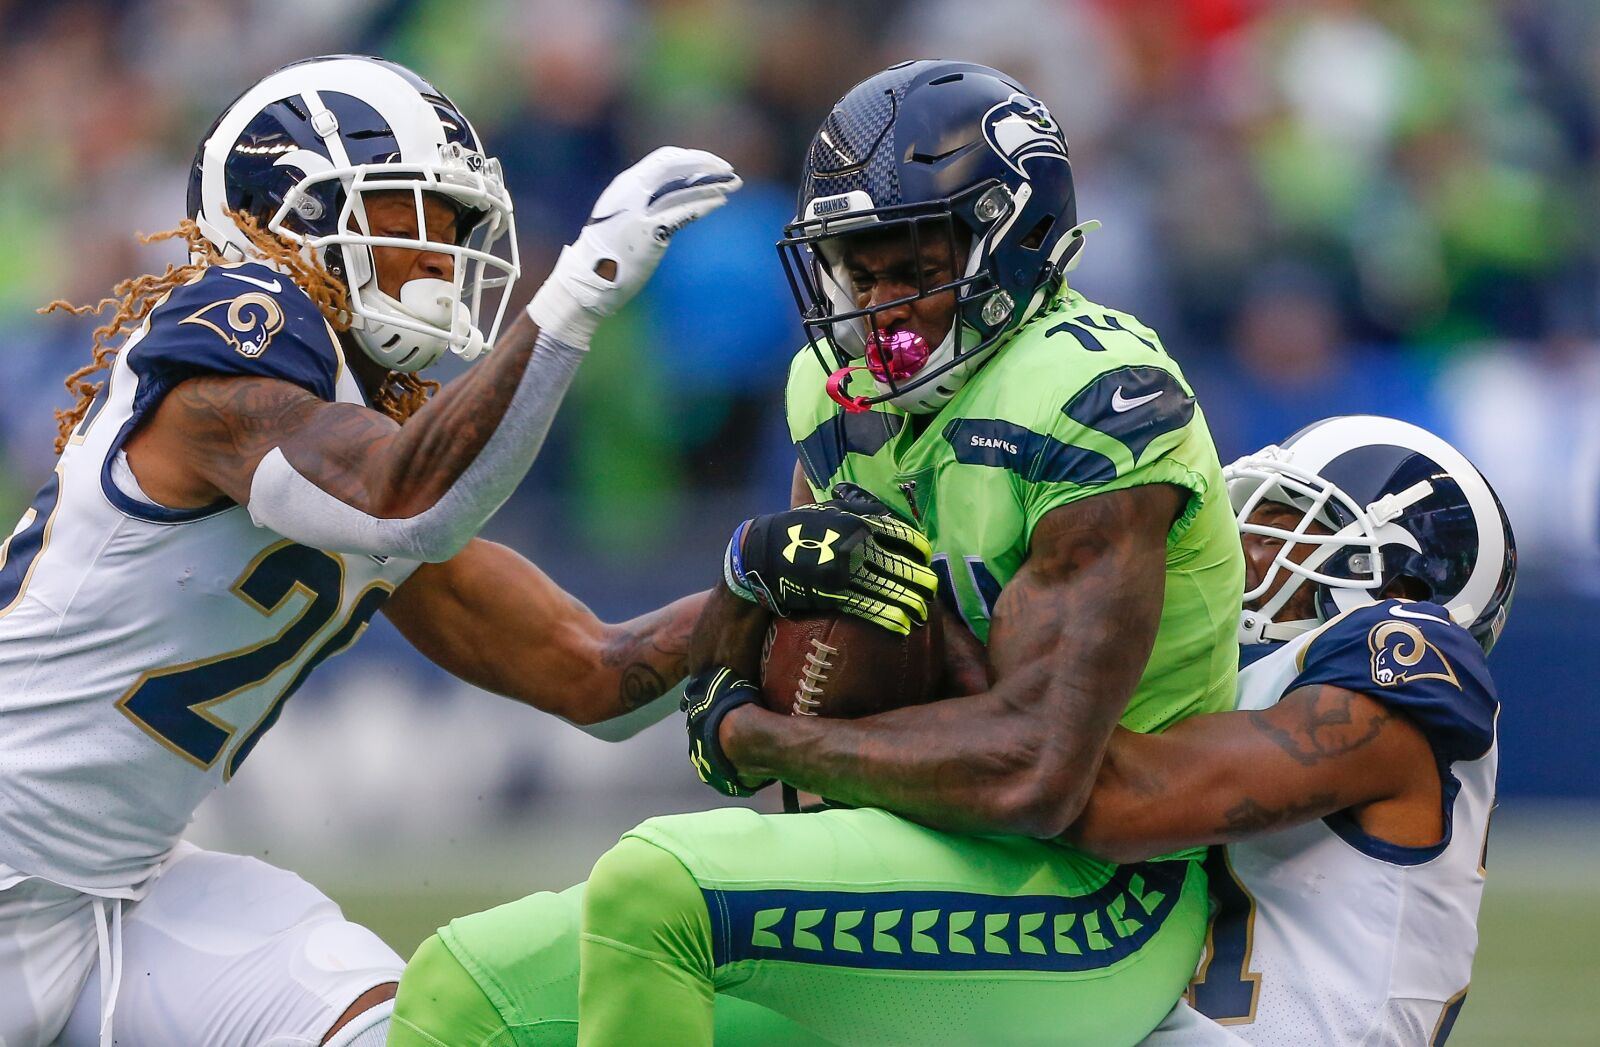 Seahawks injuries will affect the outcome versus Rams week 14